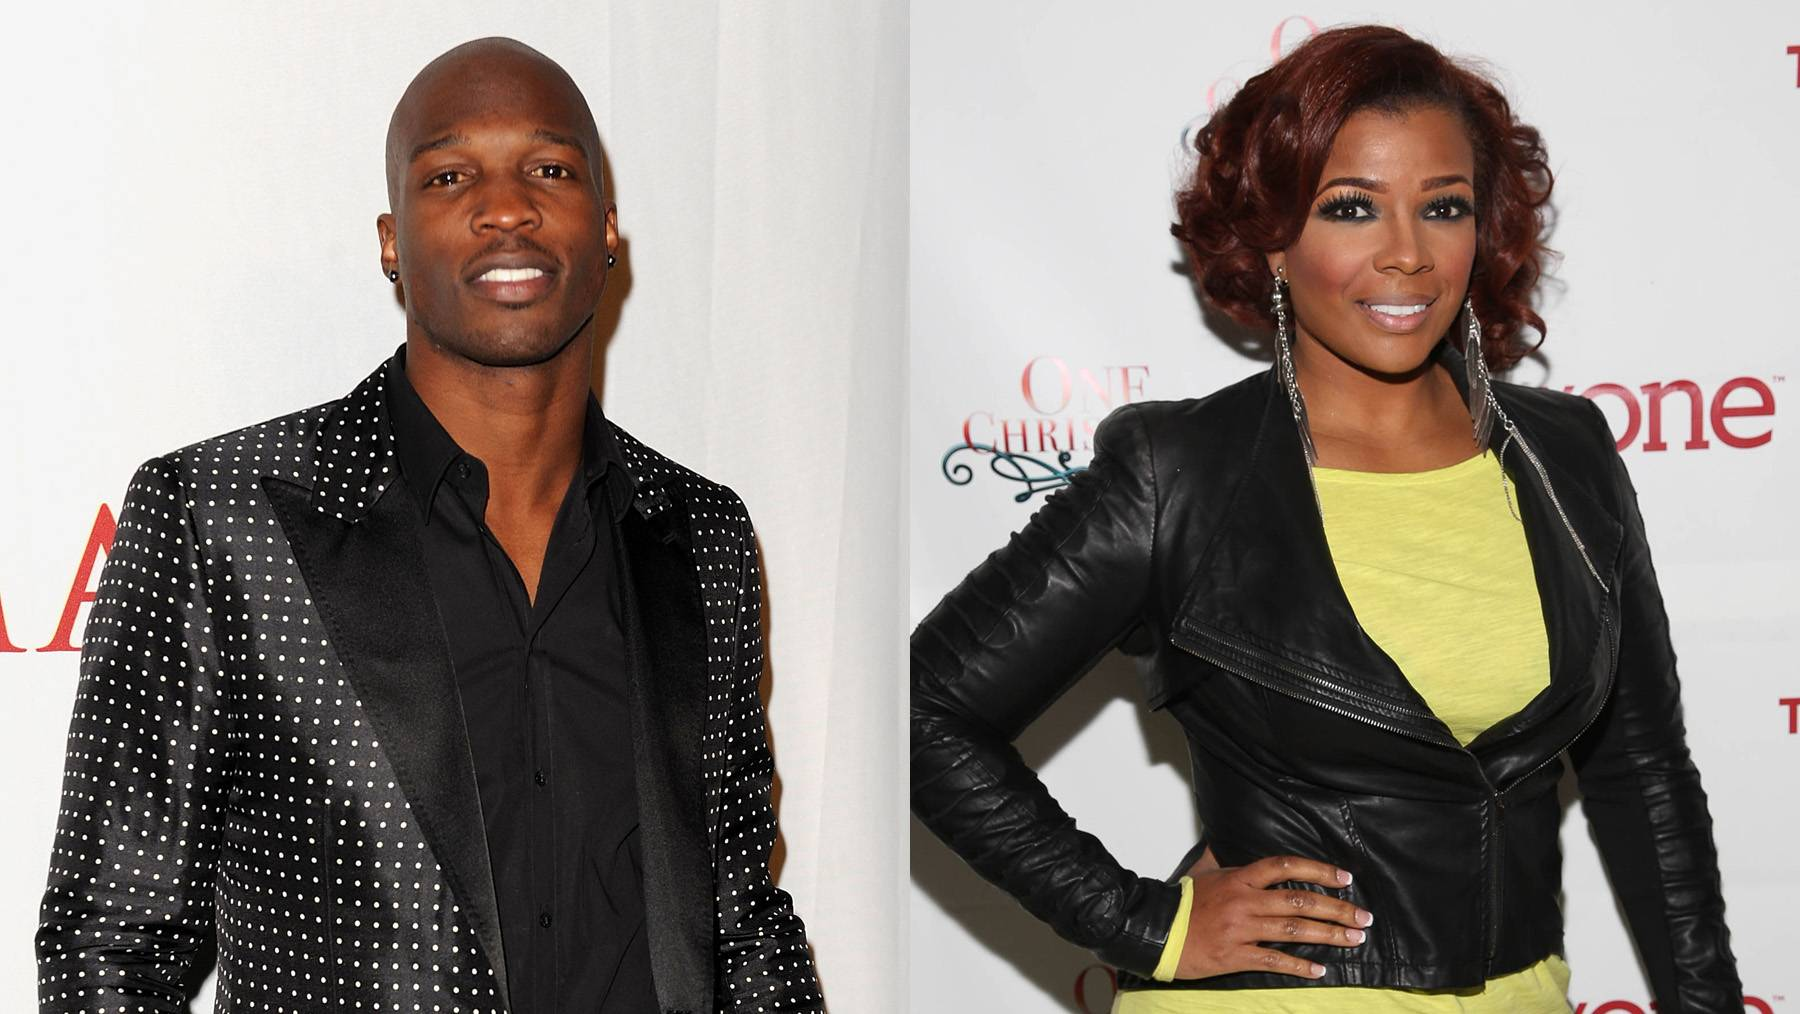 Wait What?!  - Yes, Chad Ochocinco and Syleena Johnson are brother and sister, but they keep their family ties really low-key. (Photos from left: Gustavo Caballero/Getty Images for Maxim, Rob Kim/Getty Images for TV One)